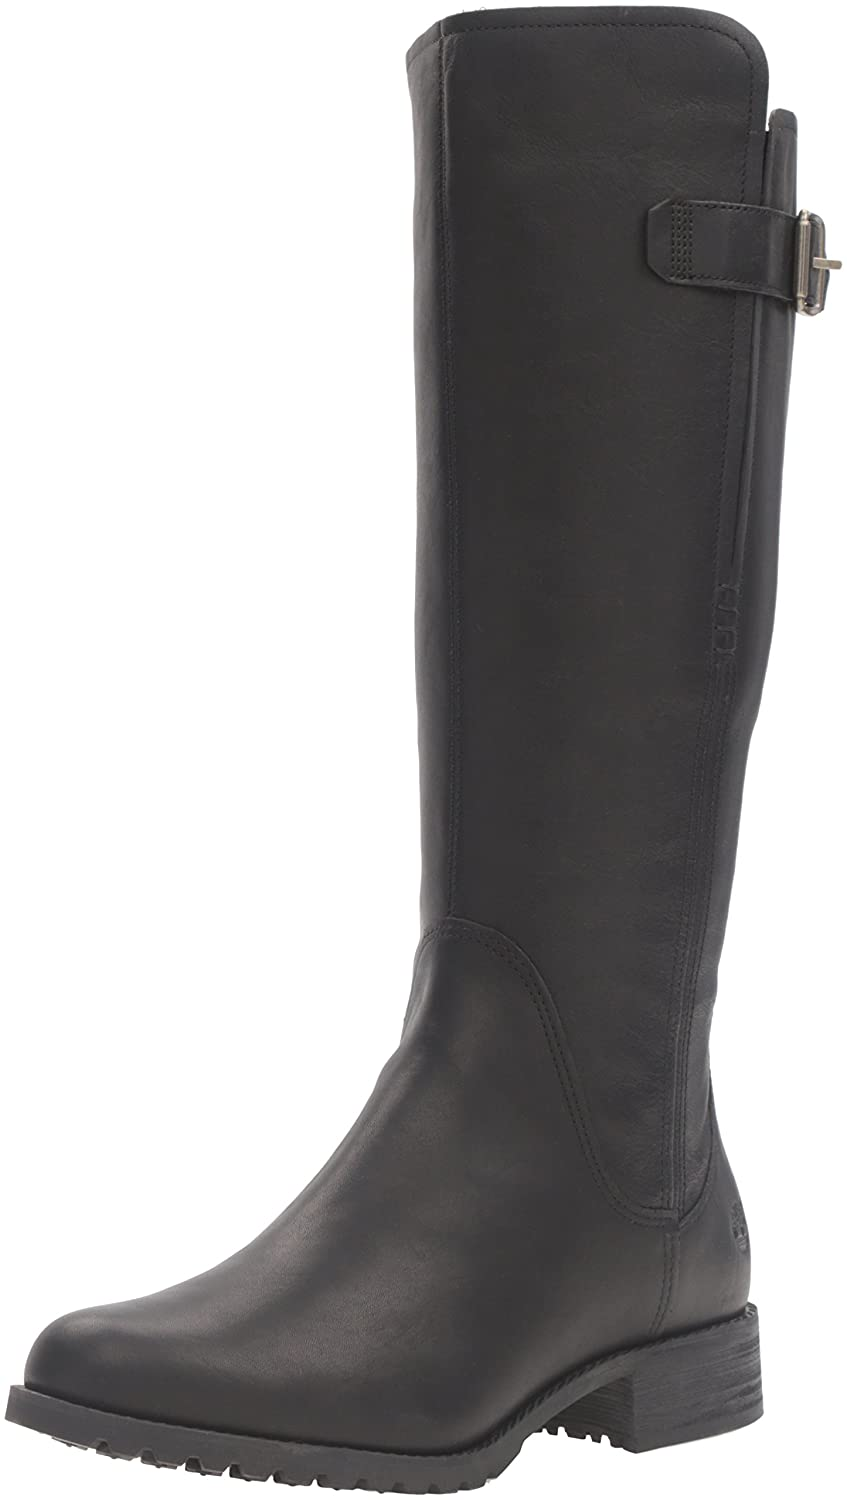 Women's Banfield Tall Waterproof Riding Boot